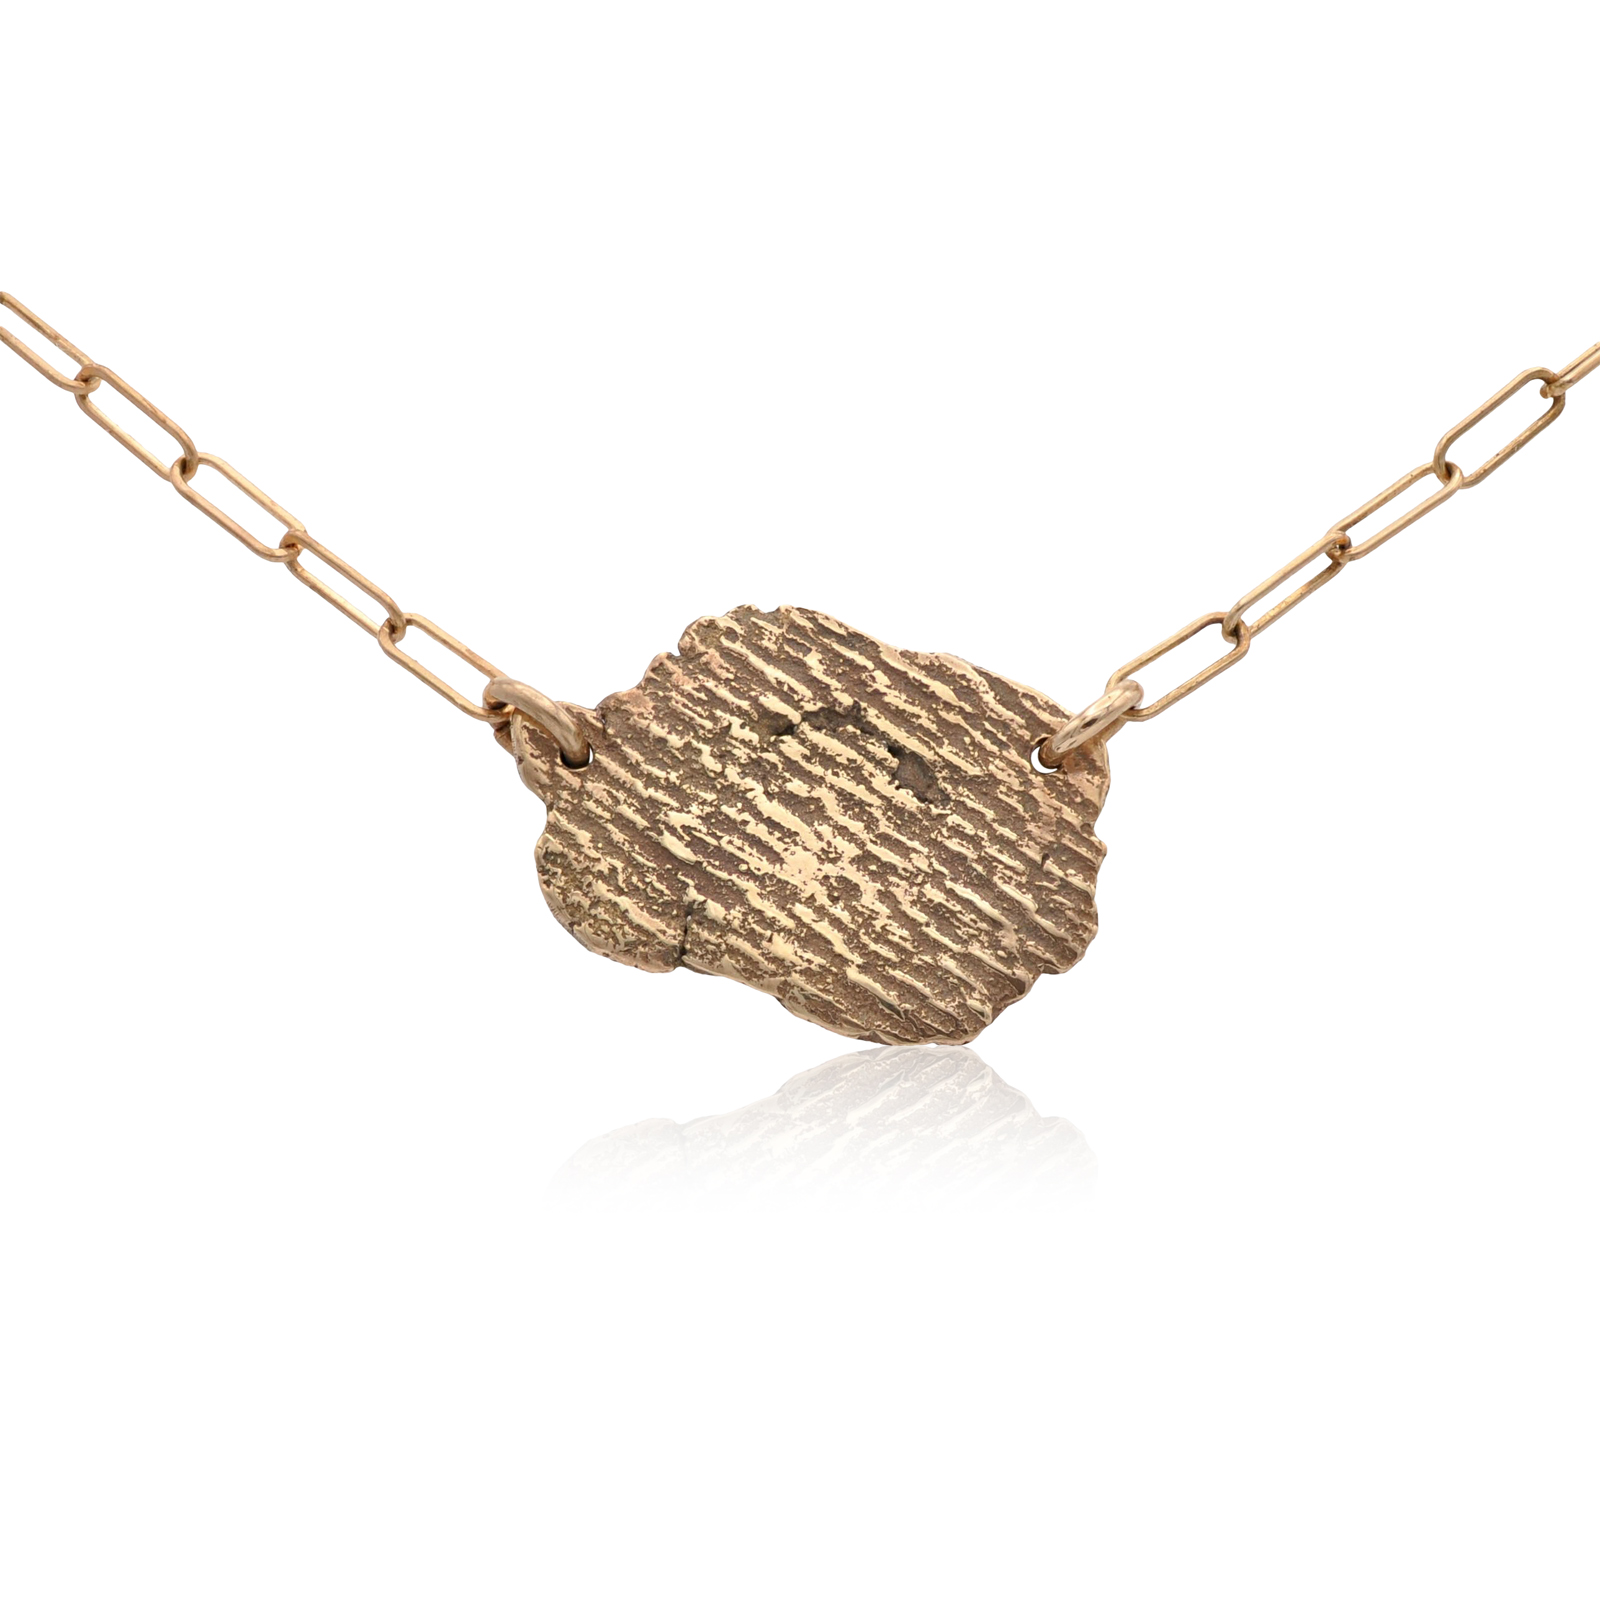 crepe-myrtle-bronze-necklace.jpg